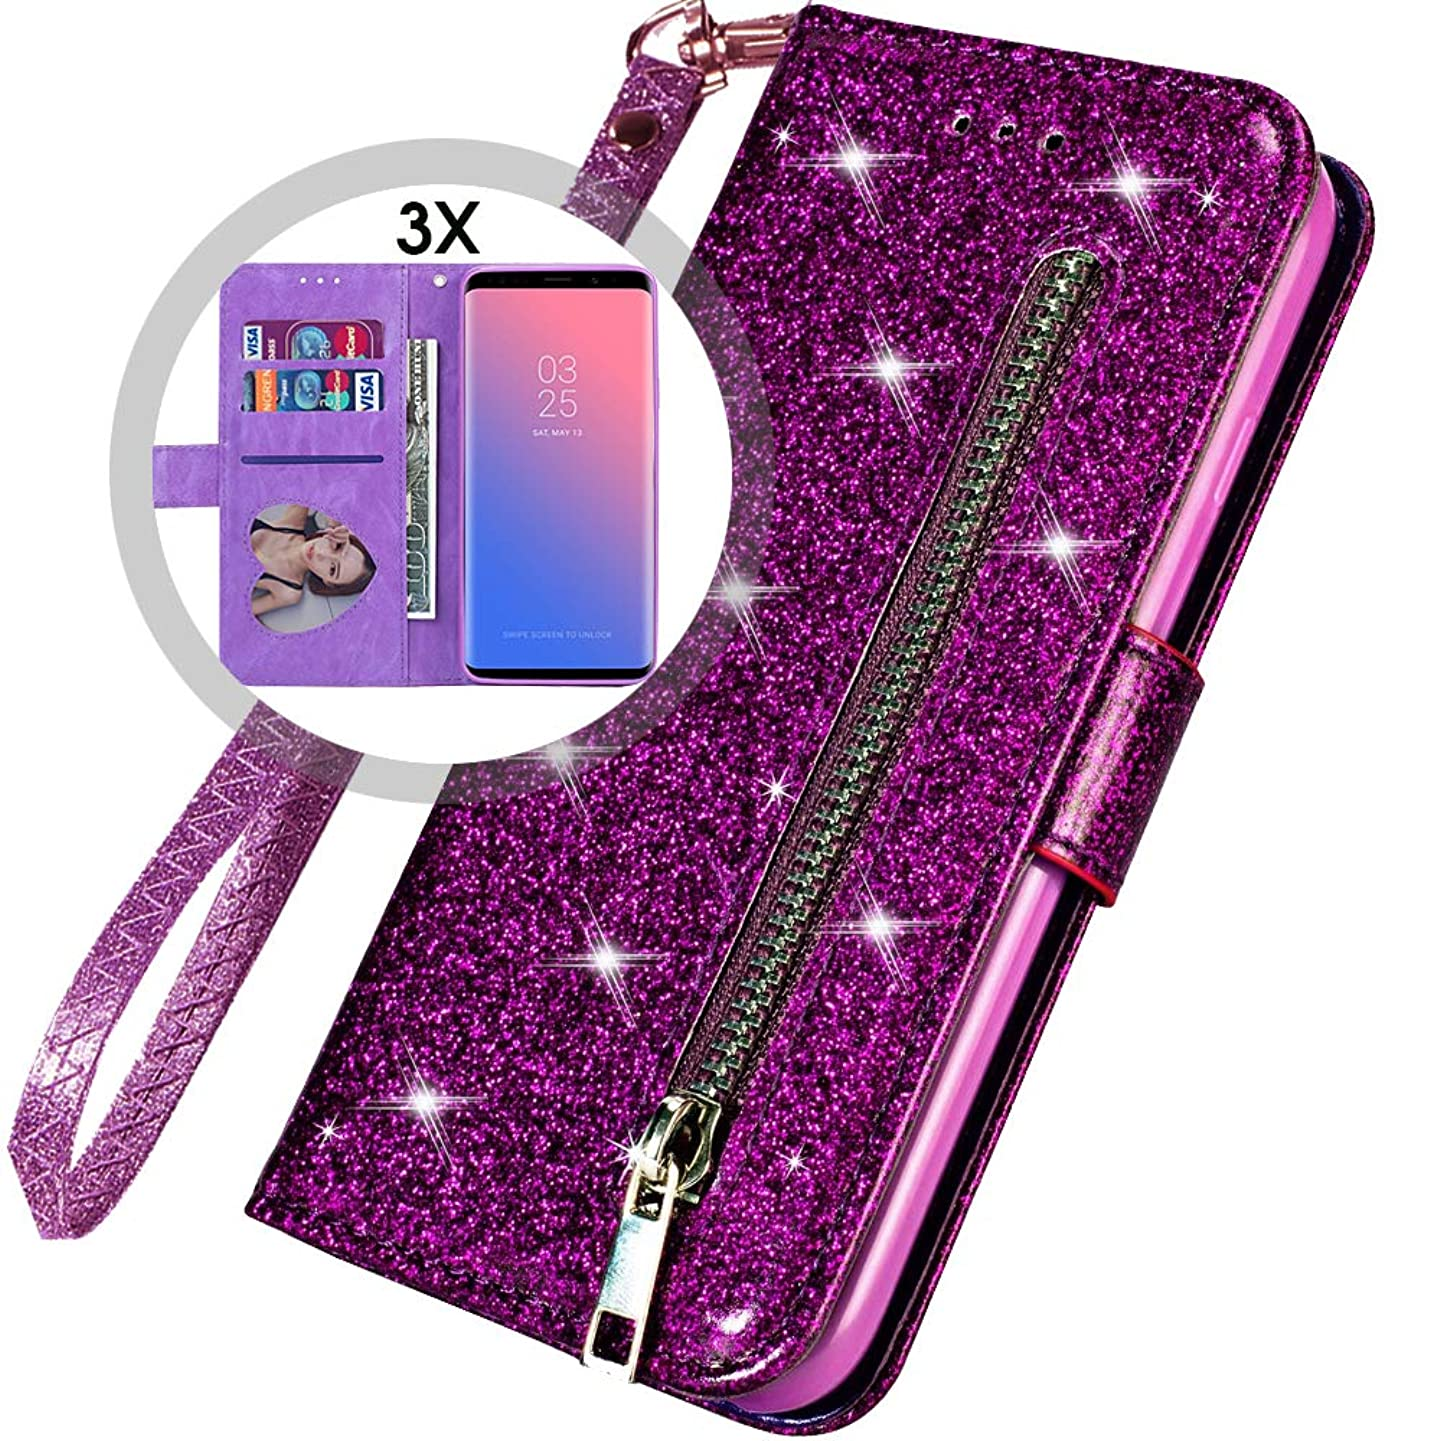 Galaxy S10e Wallet Case with Strap,S10e Wallet Case for Women,Auker Bling Glitter Folio Flip Leather Magnetic Folding Stand Sparkly Protective Zipper Purse Case with Card Holder/Money Pocket (Purple)